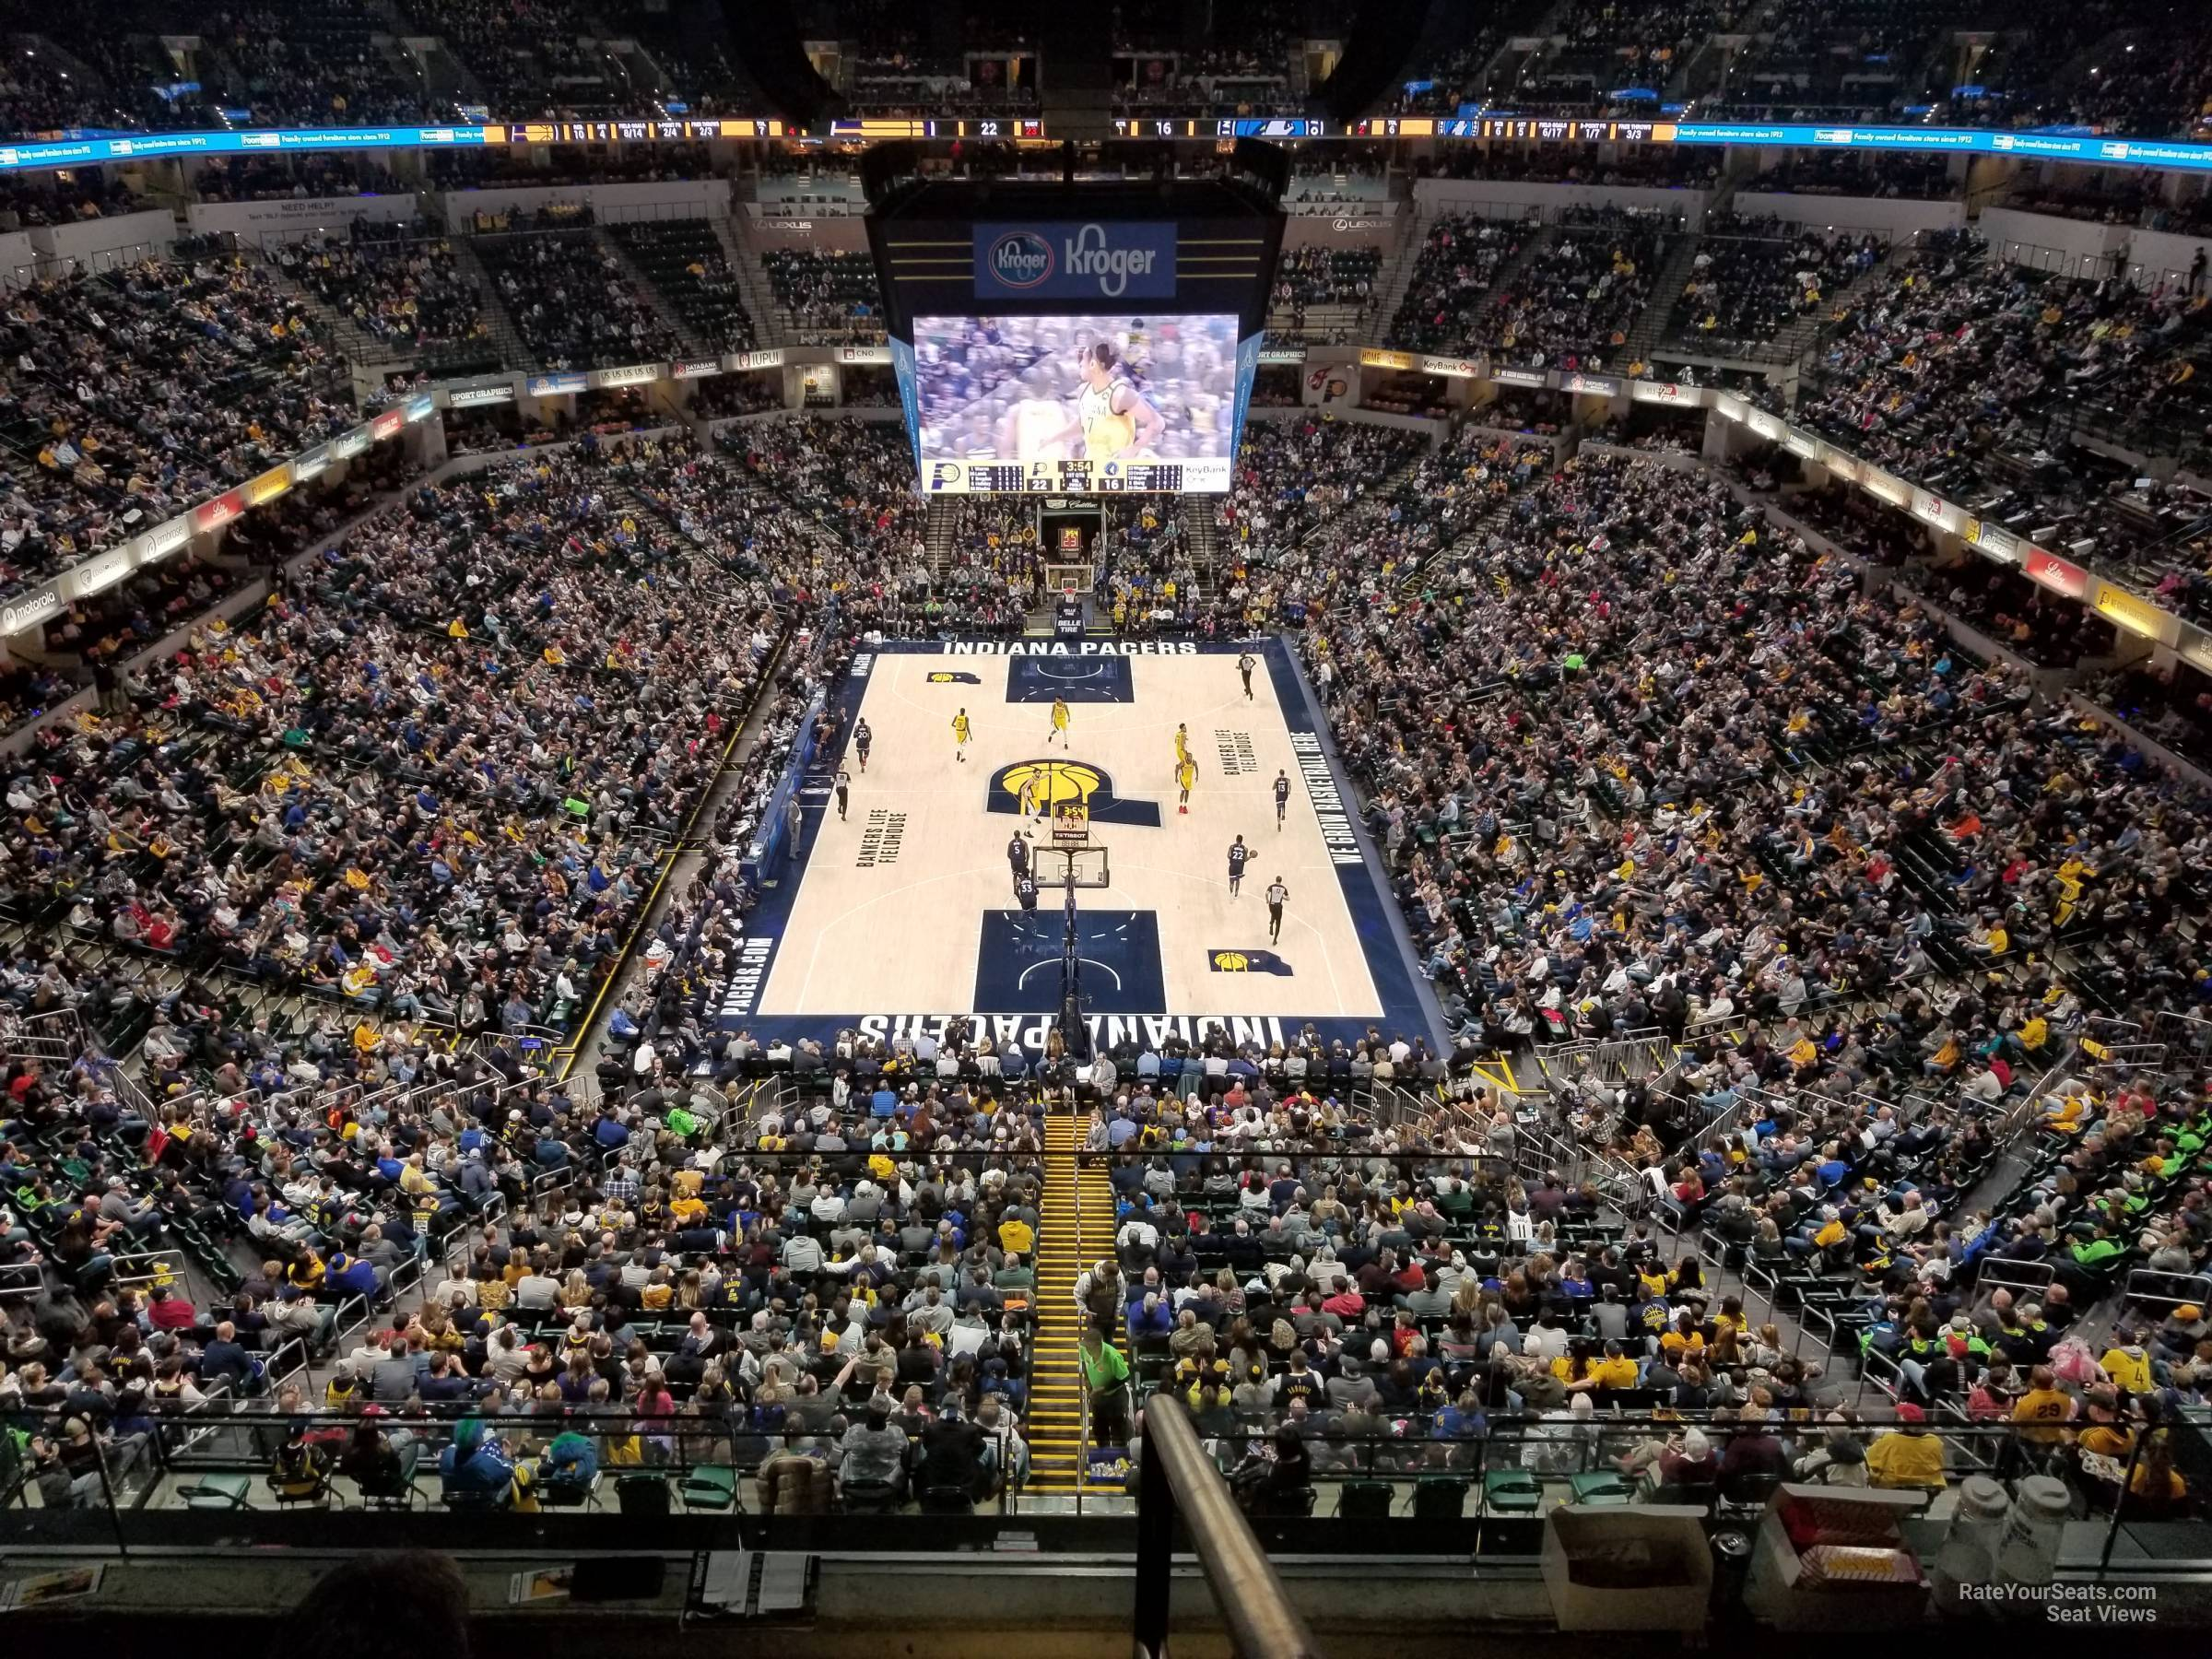 Section 232 seat view